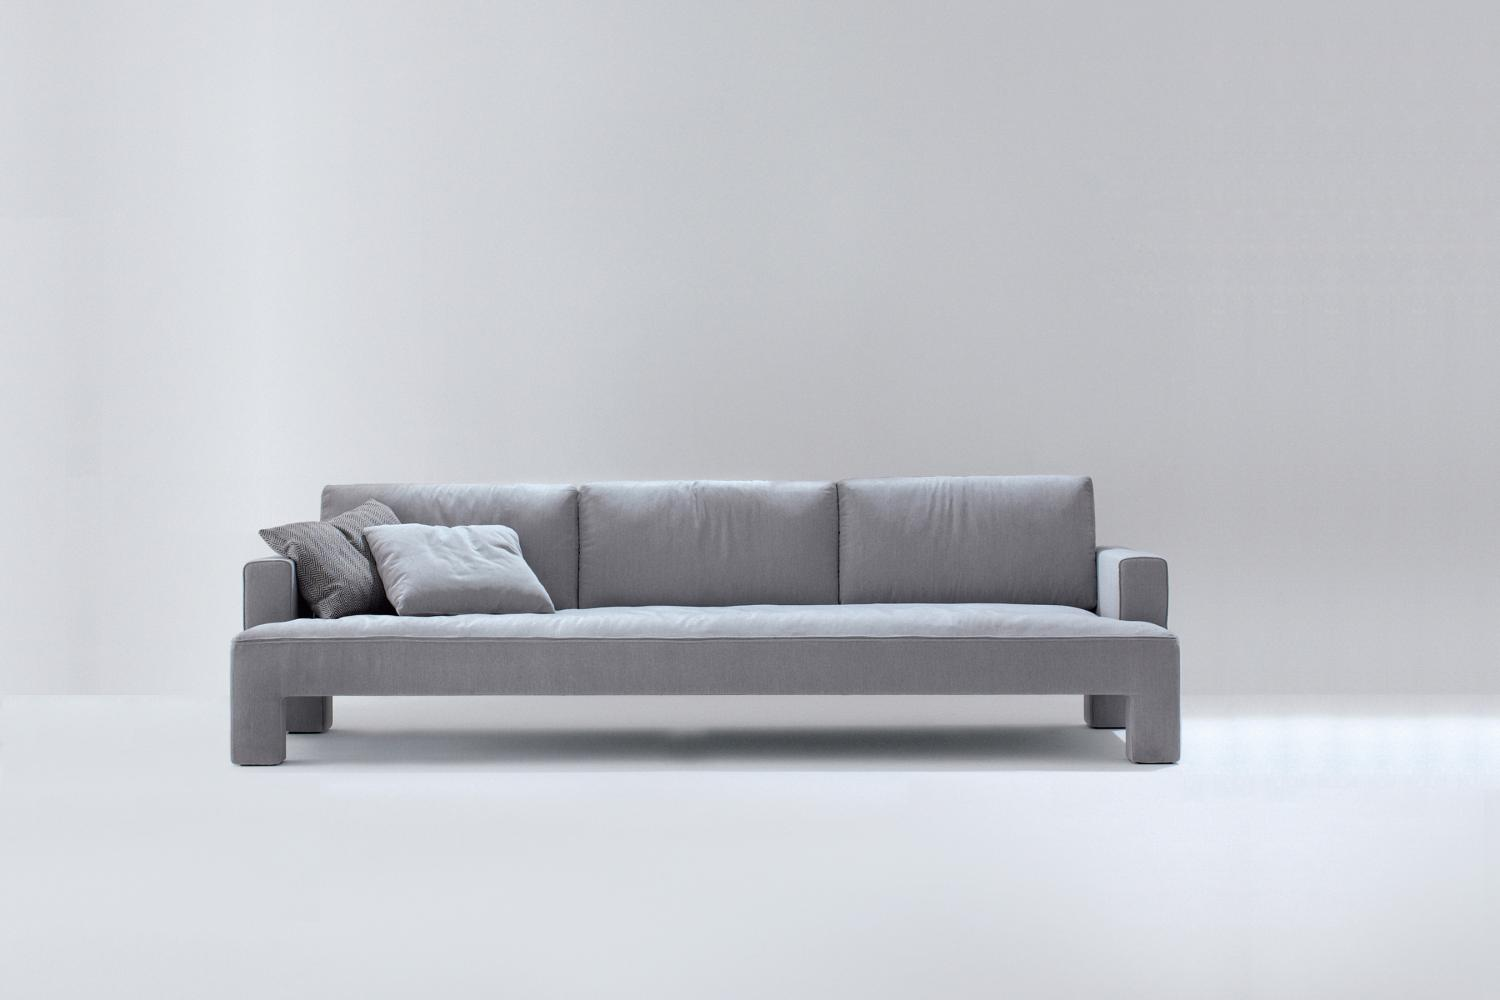 Three seater modern luxury sofa in leather or fabric